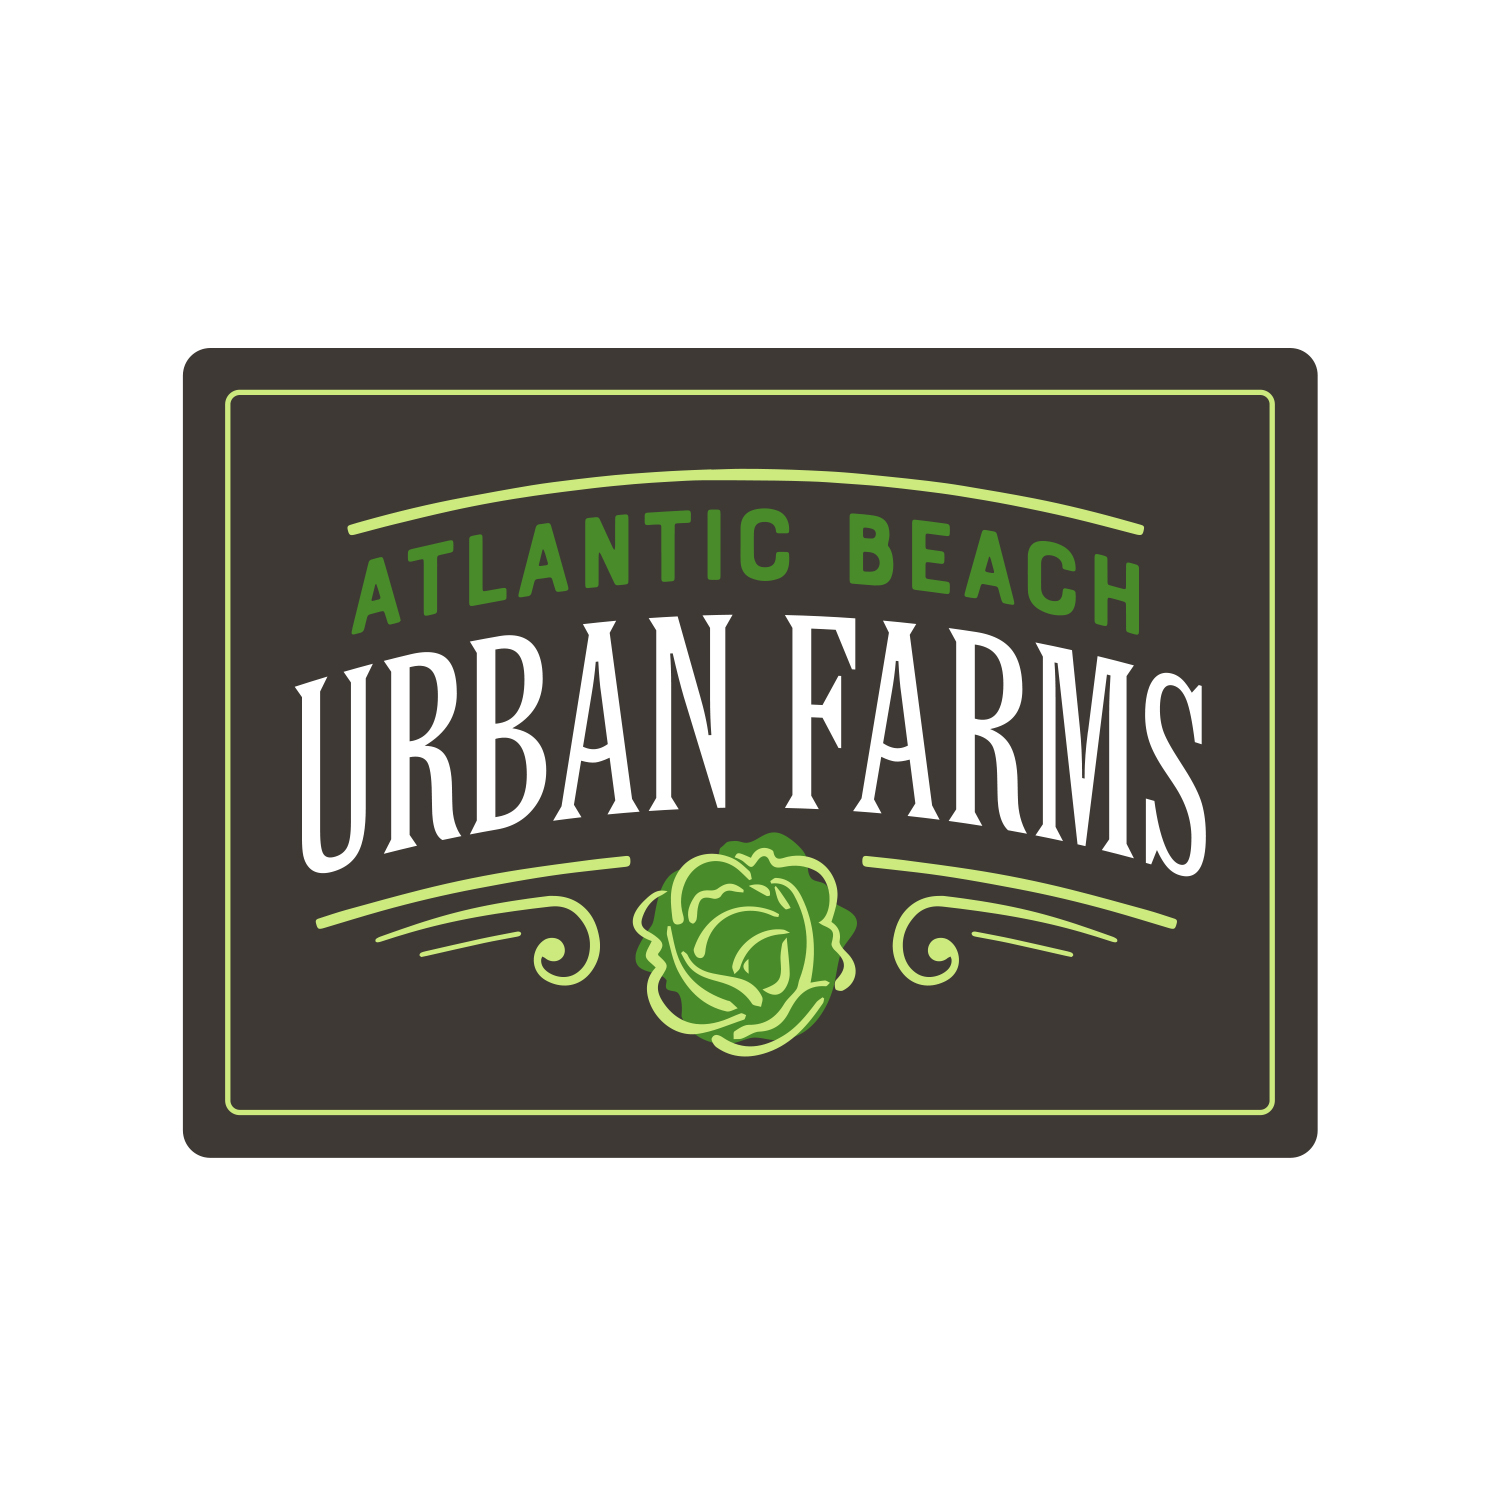 Atlantic Beach Urban Farms